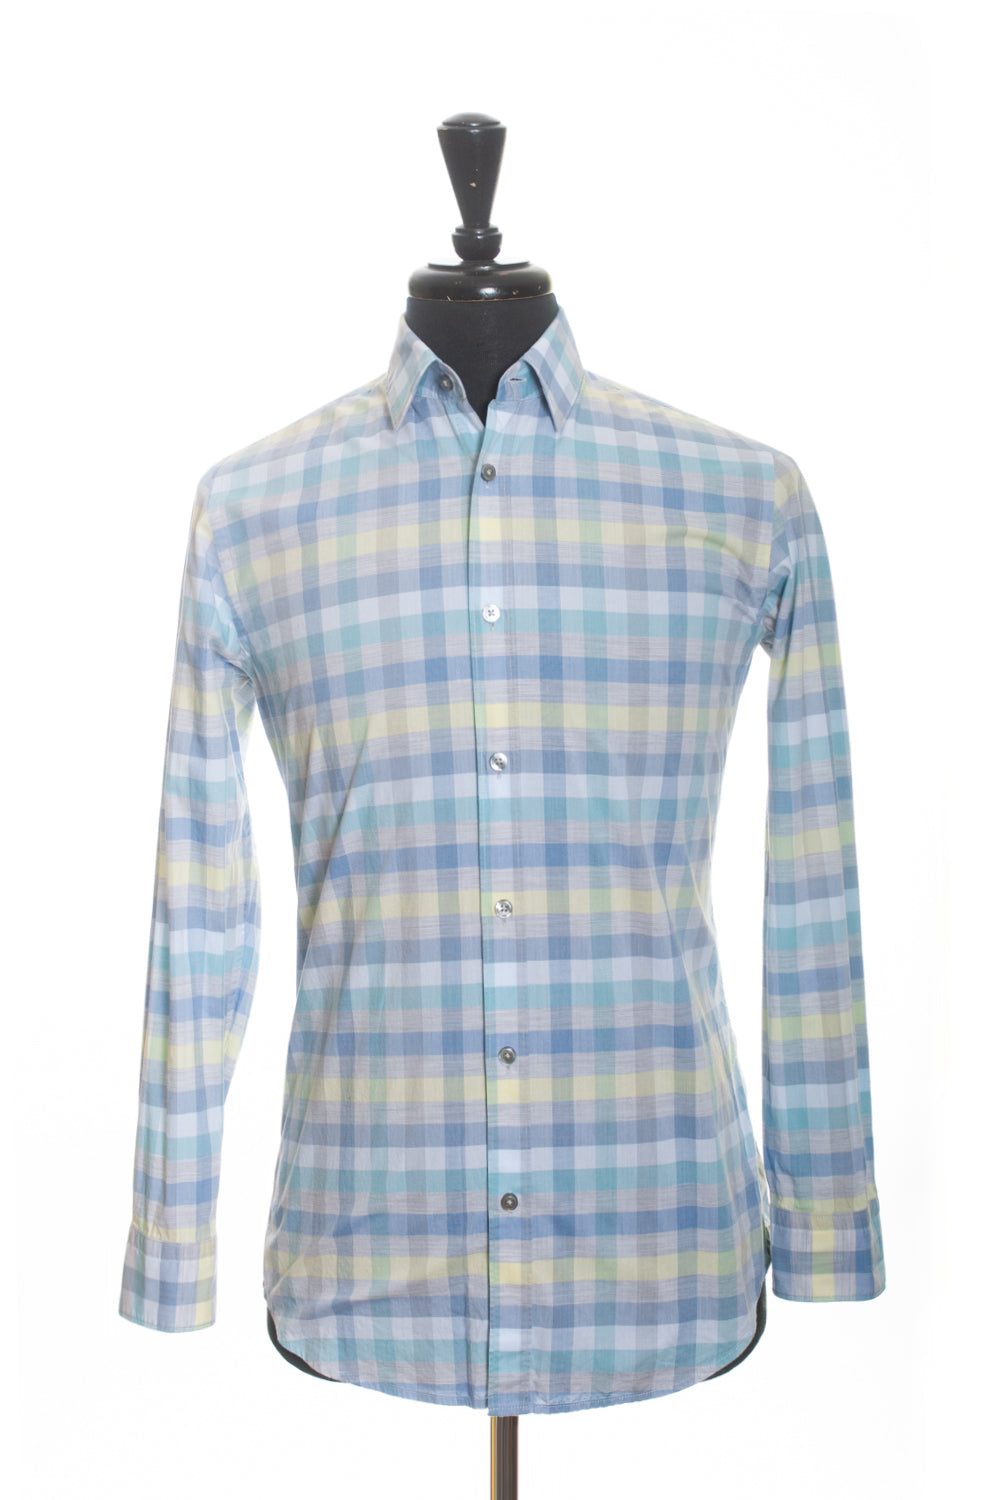 Hugo Boss Light Blue Check Summer Cotton Shirt for Luxmrkt.com Menswear Consignment Edmonton